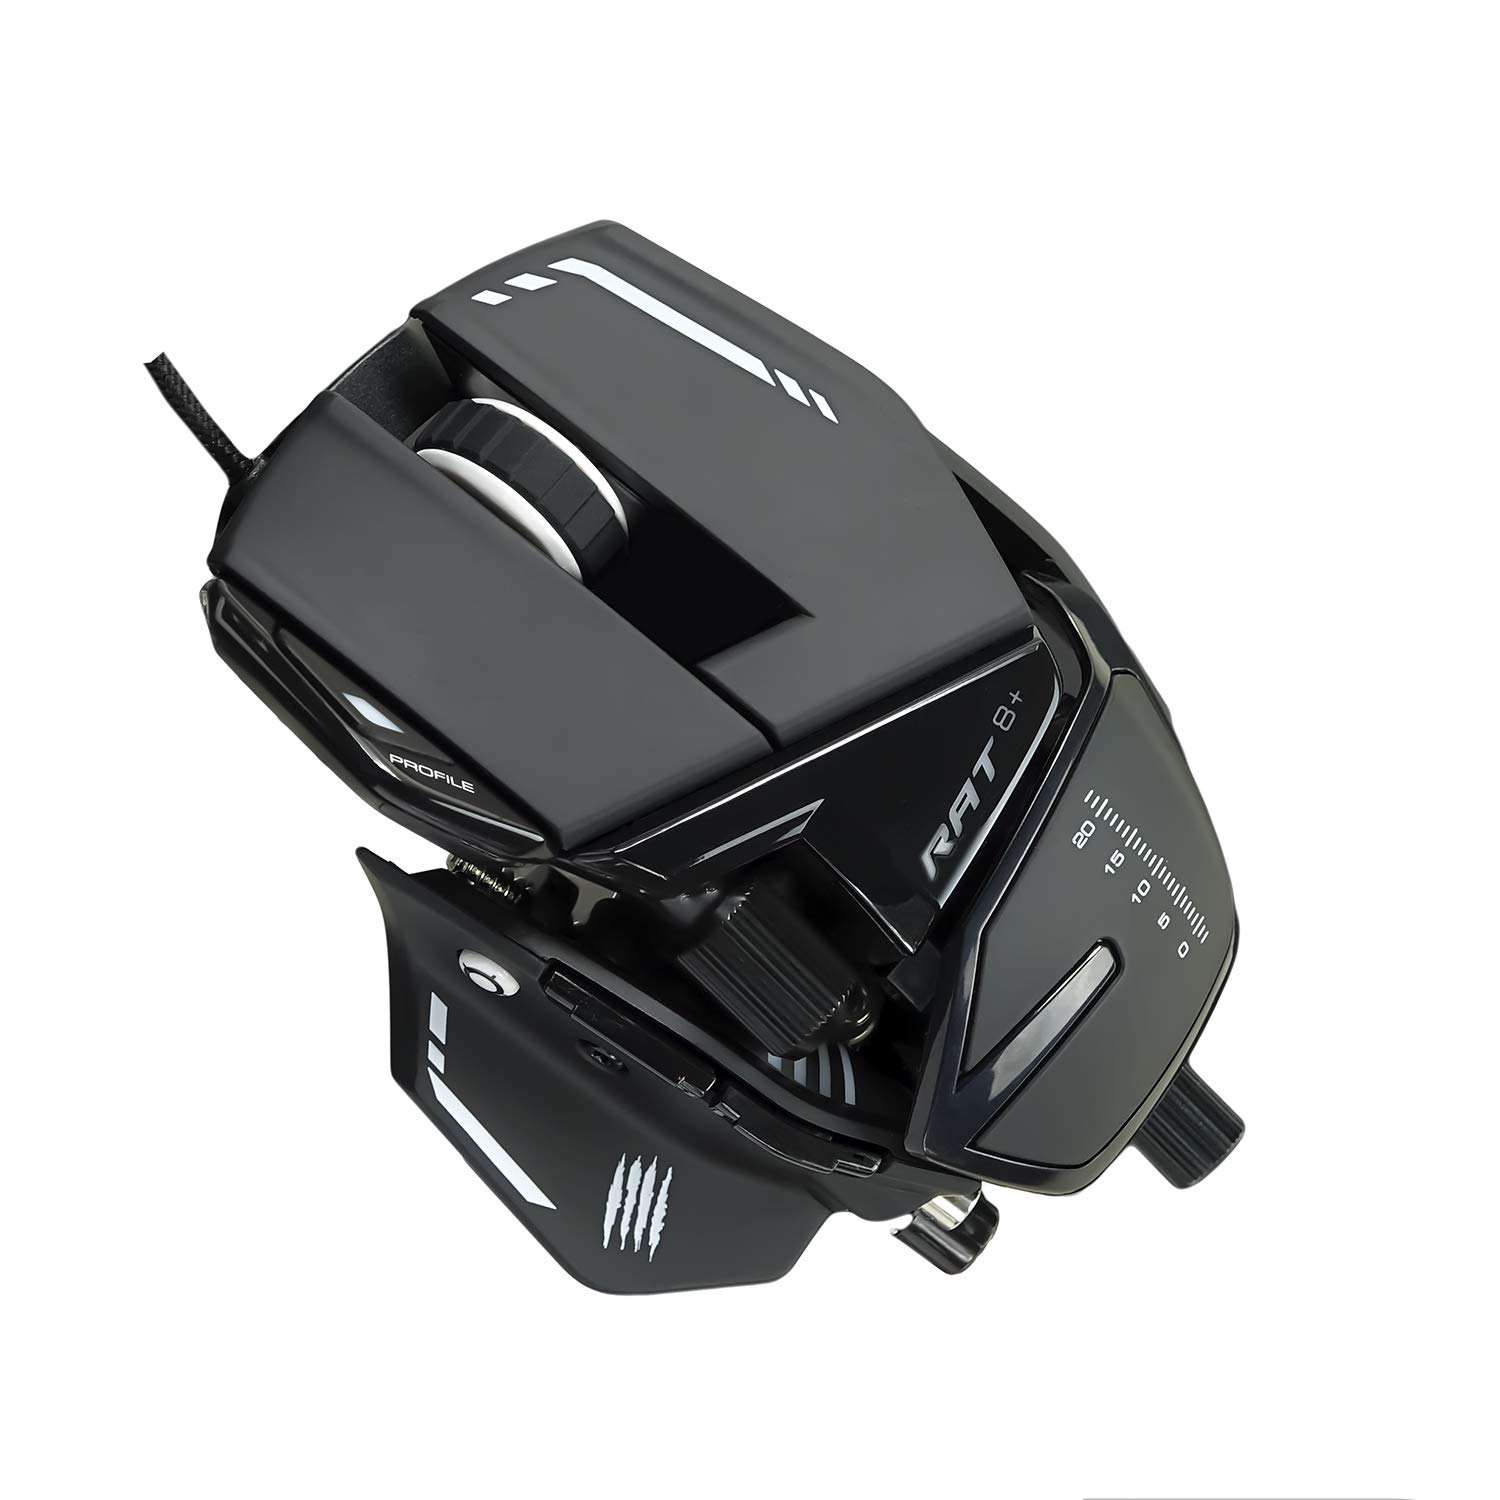 Mad Catz The Authentic R.A.T. 8+ Optical Gaming Mouse - MR05DCAMBL00